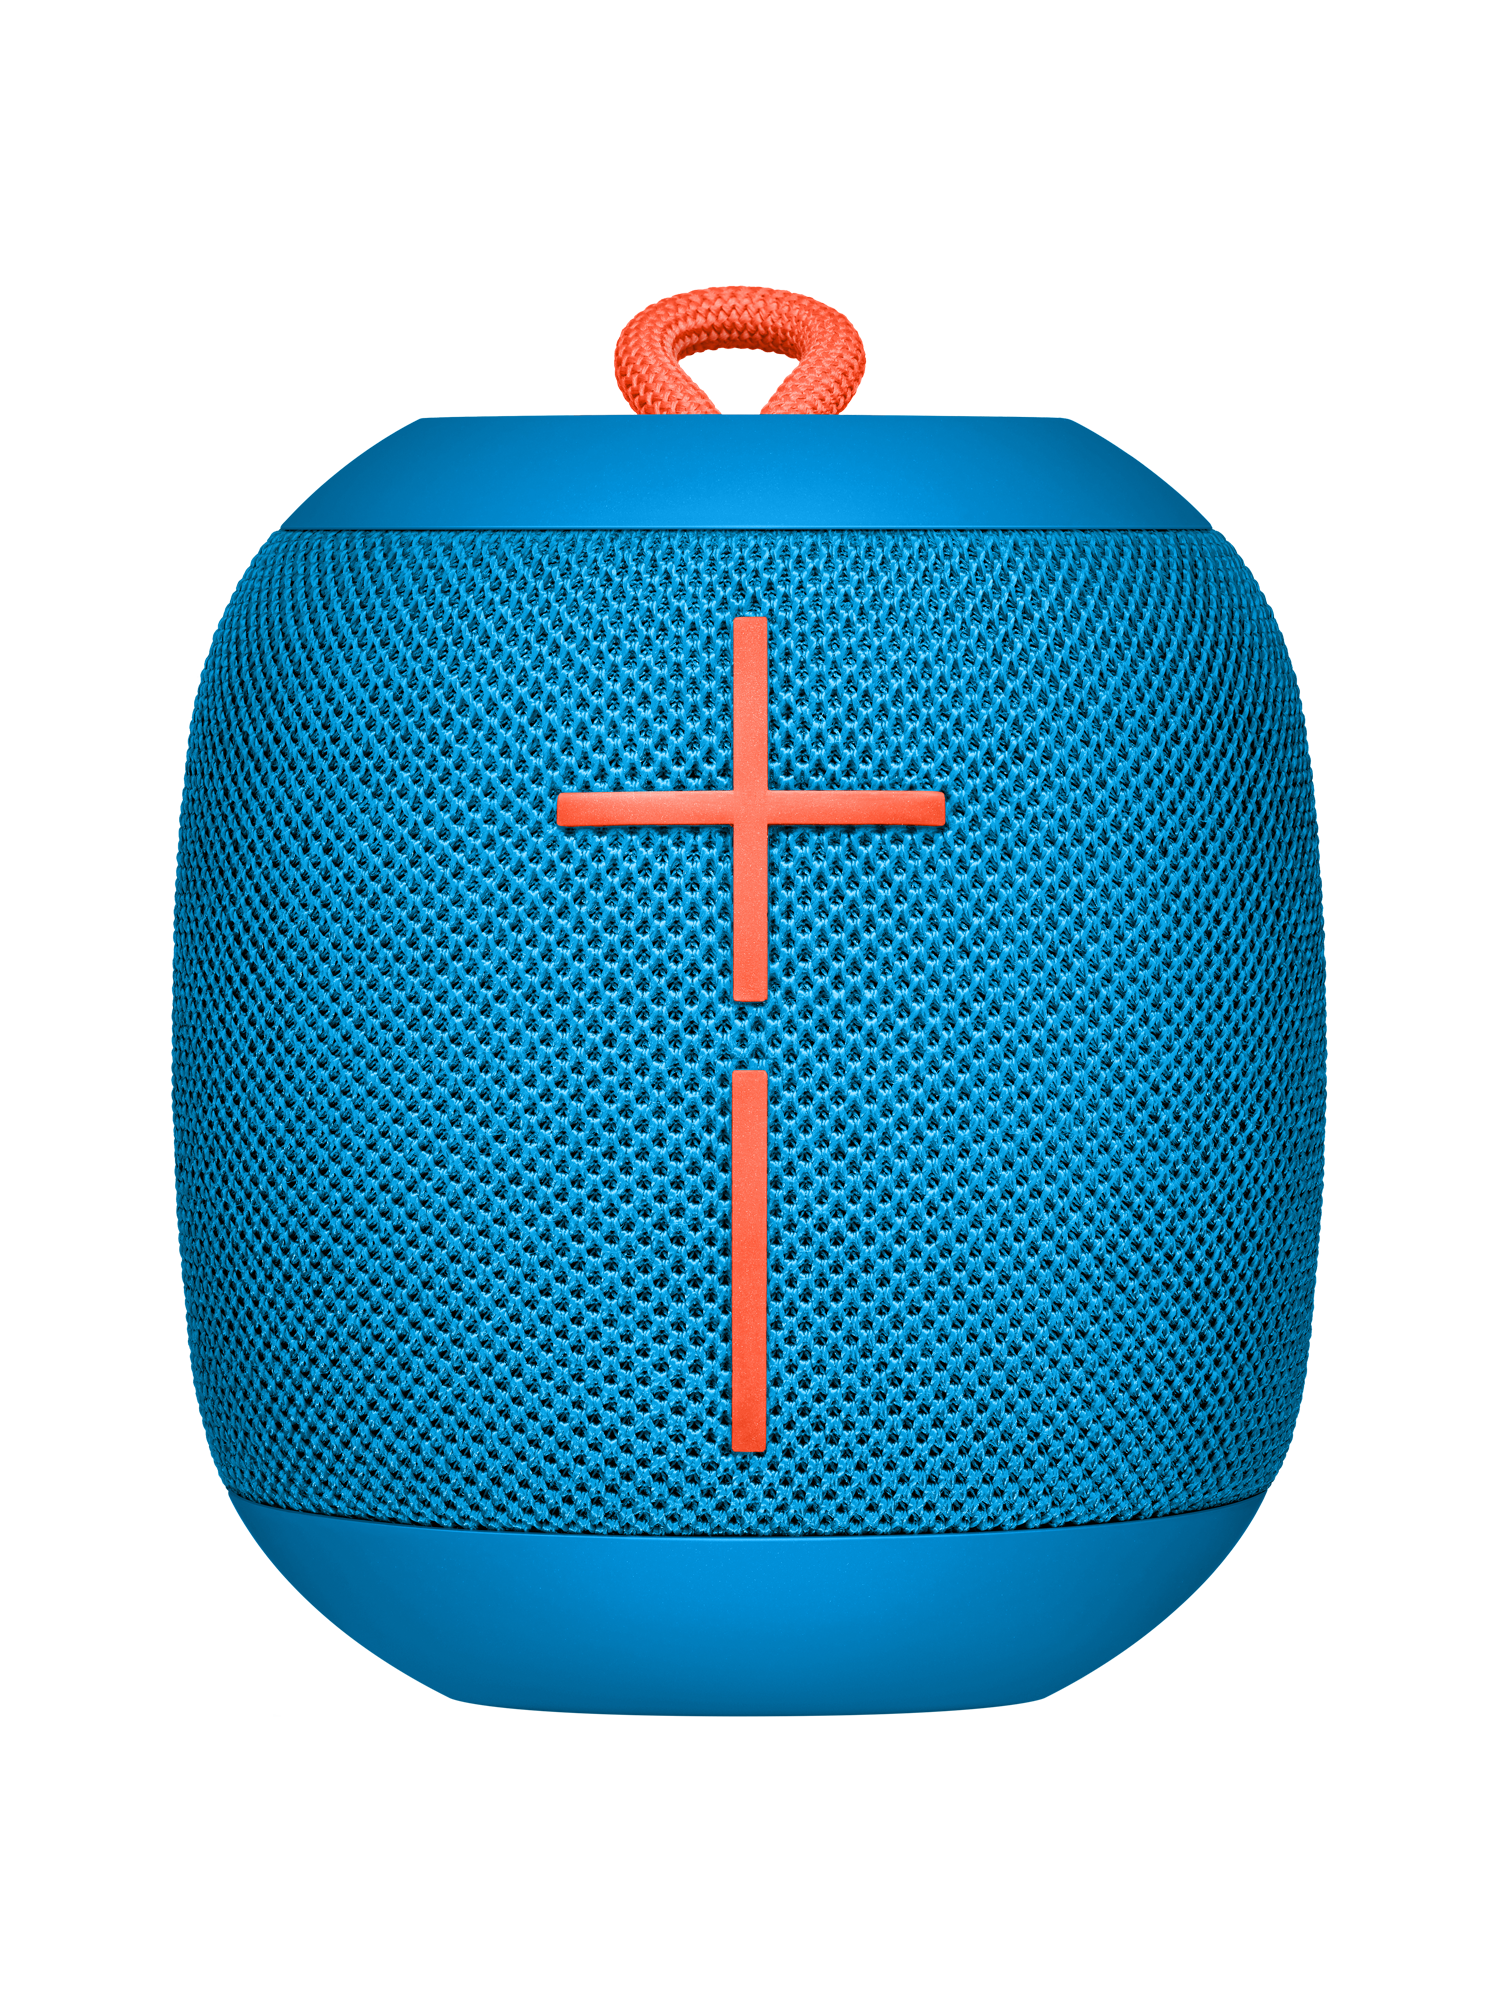 wonderboom Subzero%20Blue FOB 1